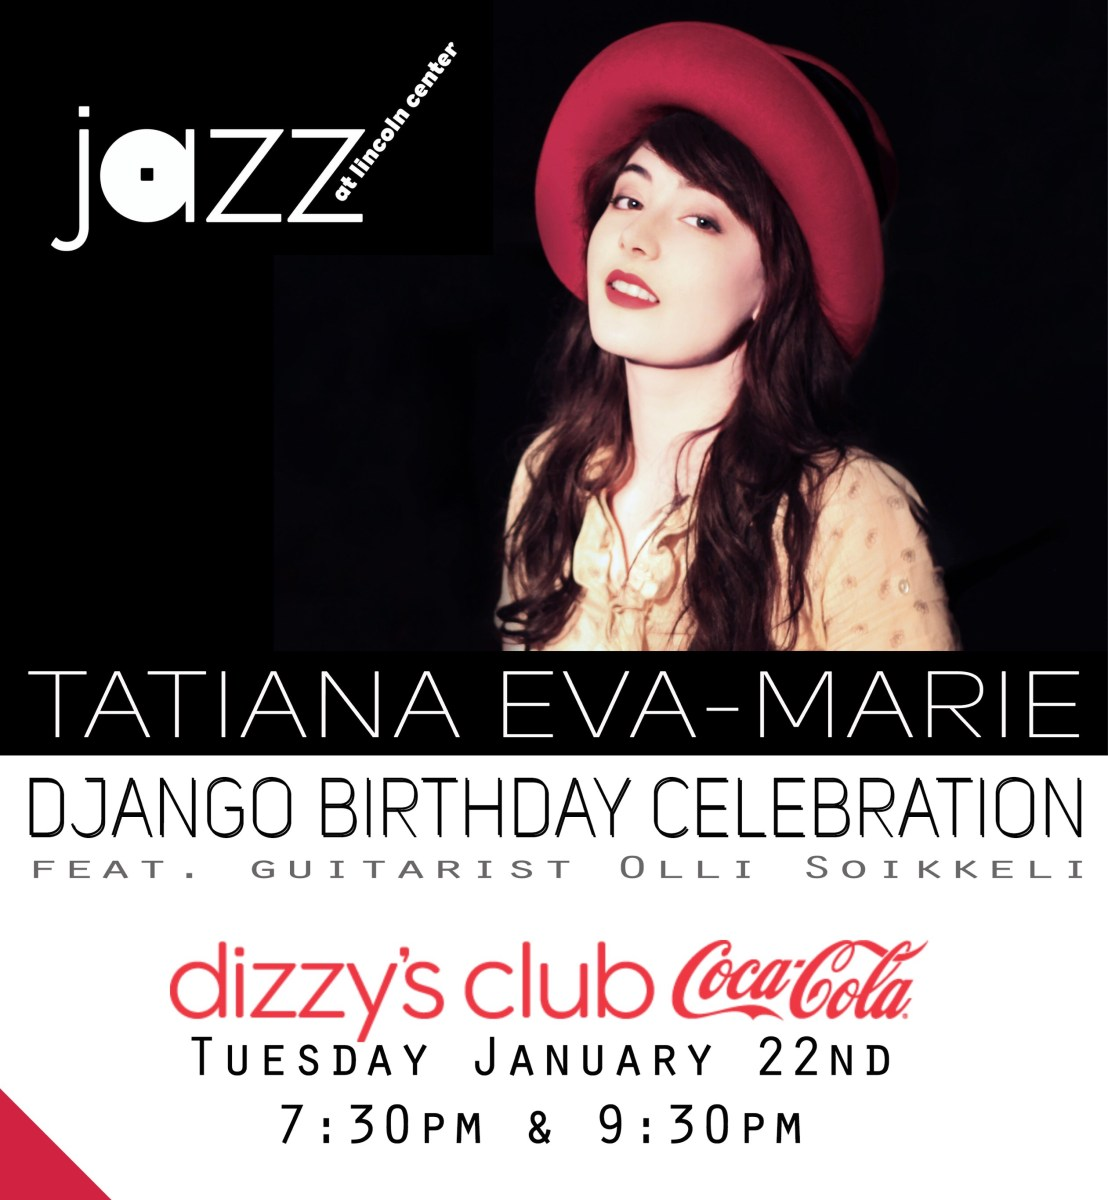 New York Jazz artist Tatiana Eva-Marie and the Avalon Jazz Band will be celebrating Django Reinhardt and his brand of hot jazz on Tuesday, January 2nd at Dizzy's Club (Jazz at Lincoln Center) in New York